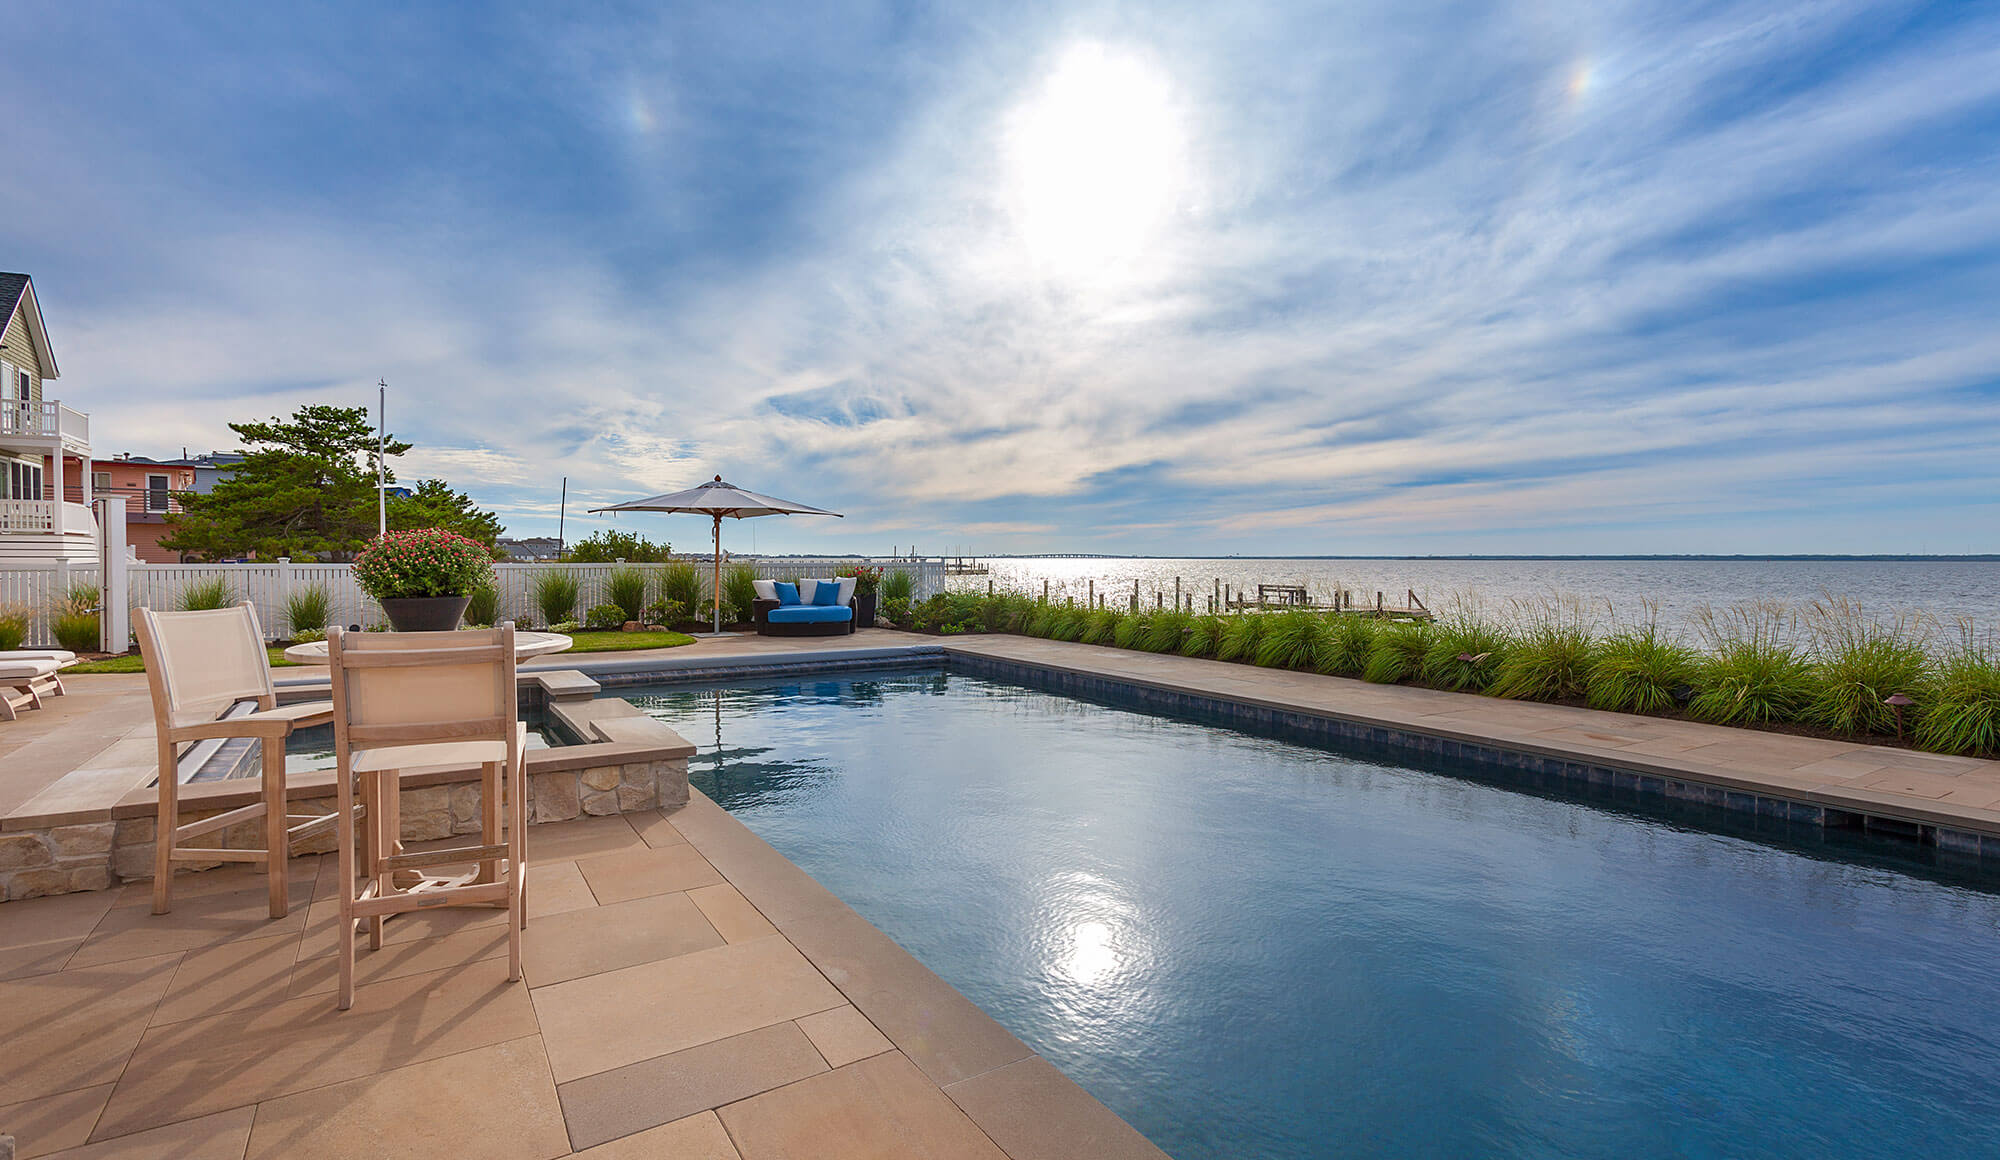 Pool Hardscaping Design by Bay Ave Plant Company on LBI